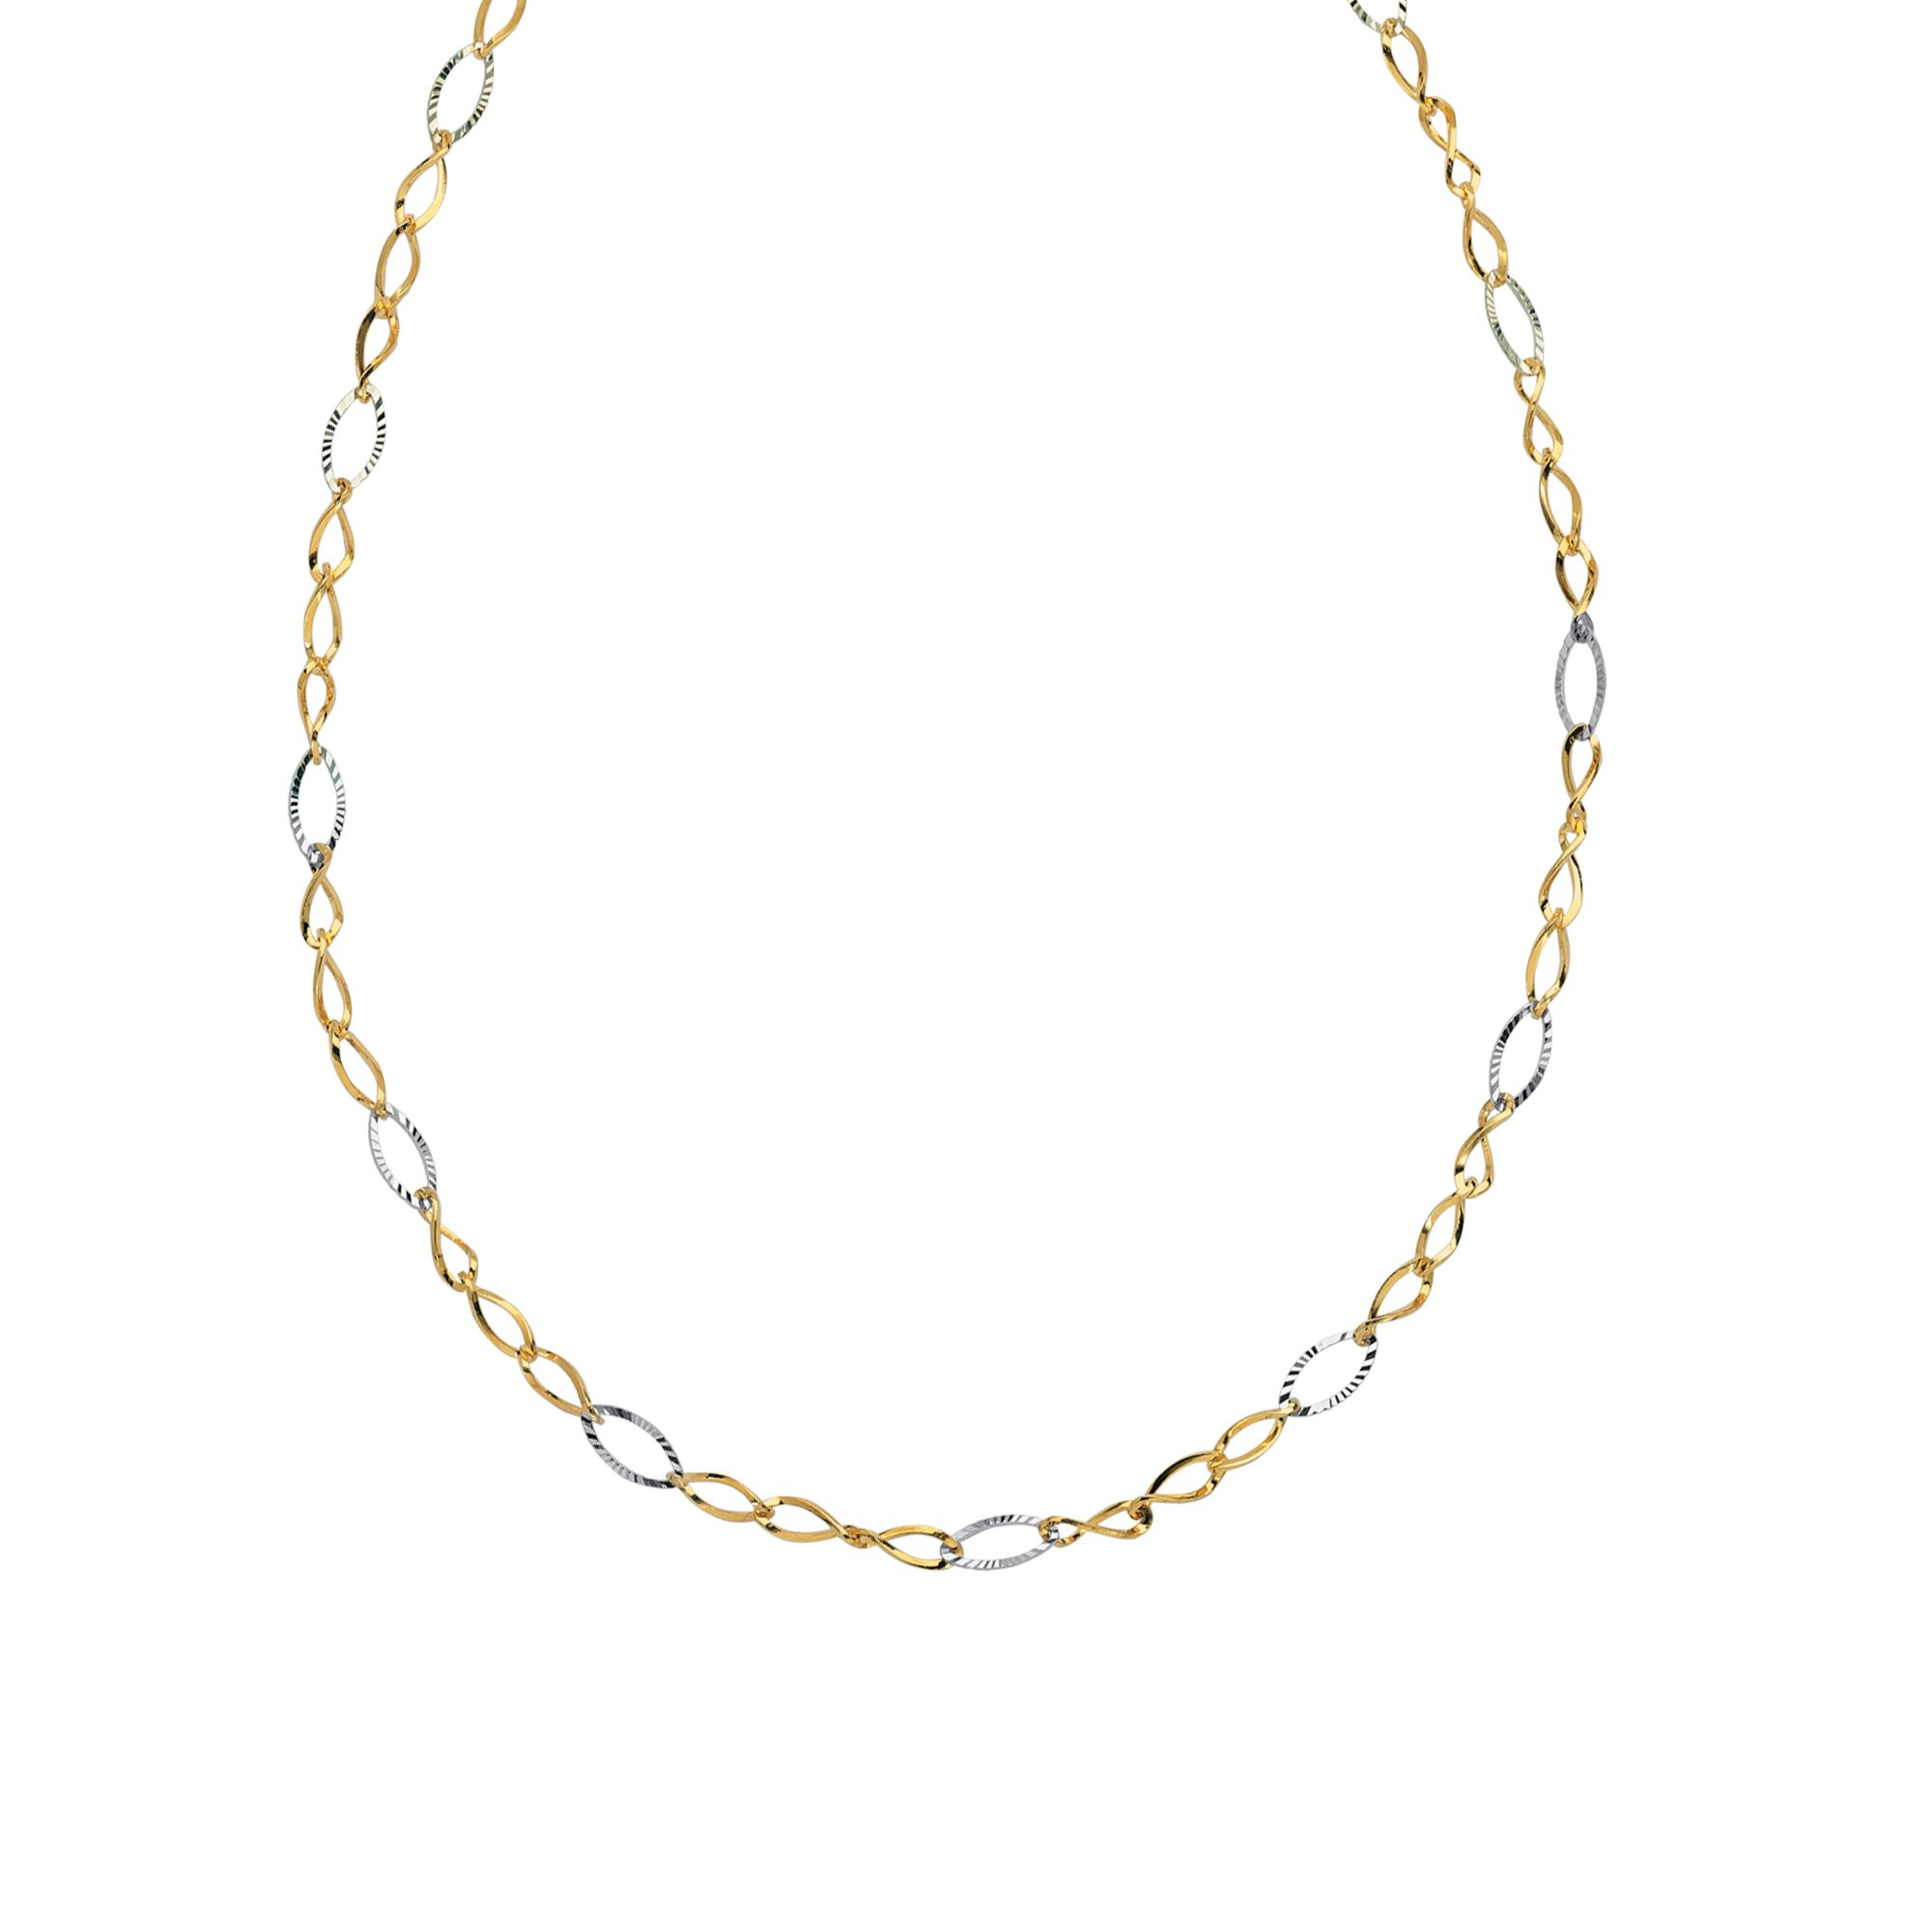 Three Layer Station Style Bib Necklace 14k Yellow Gold with Beads and Twists